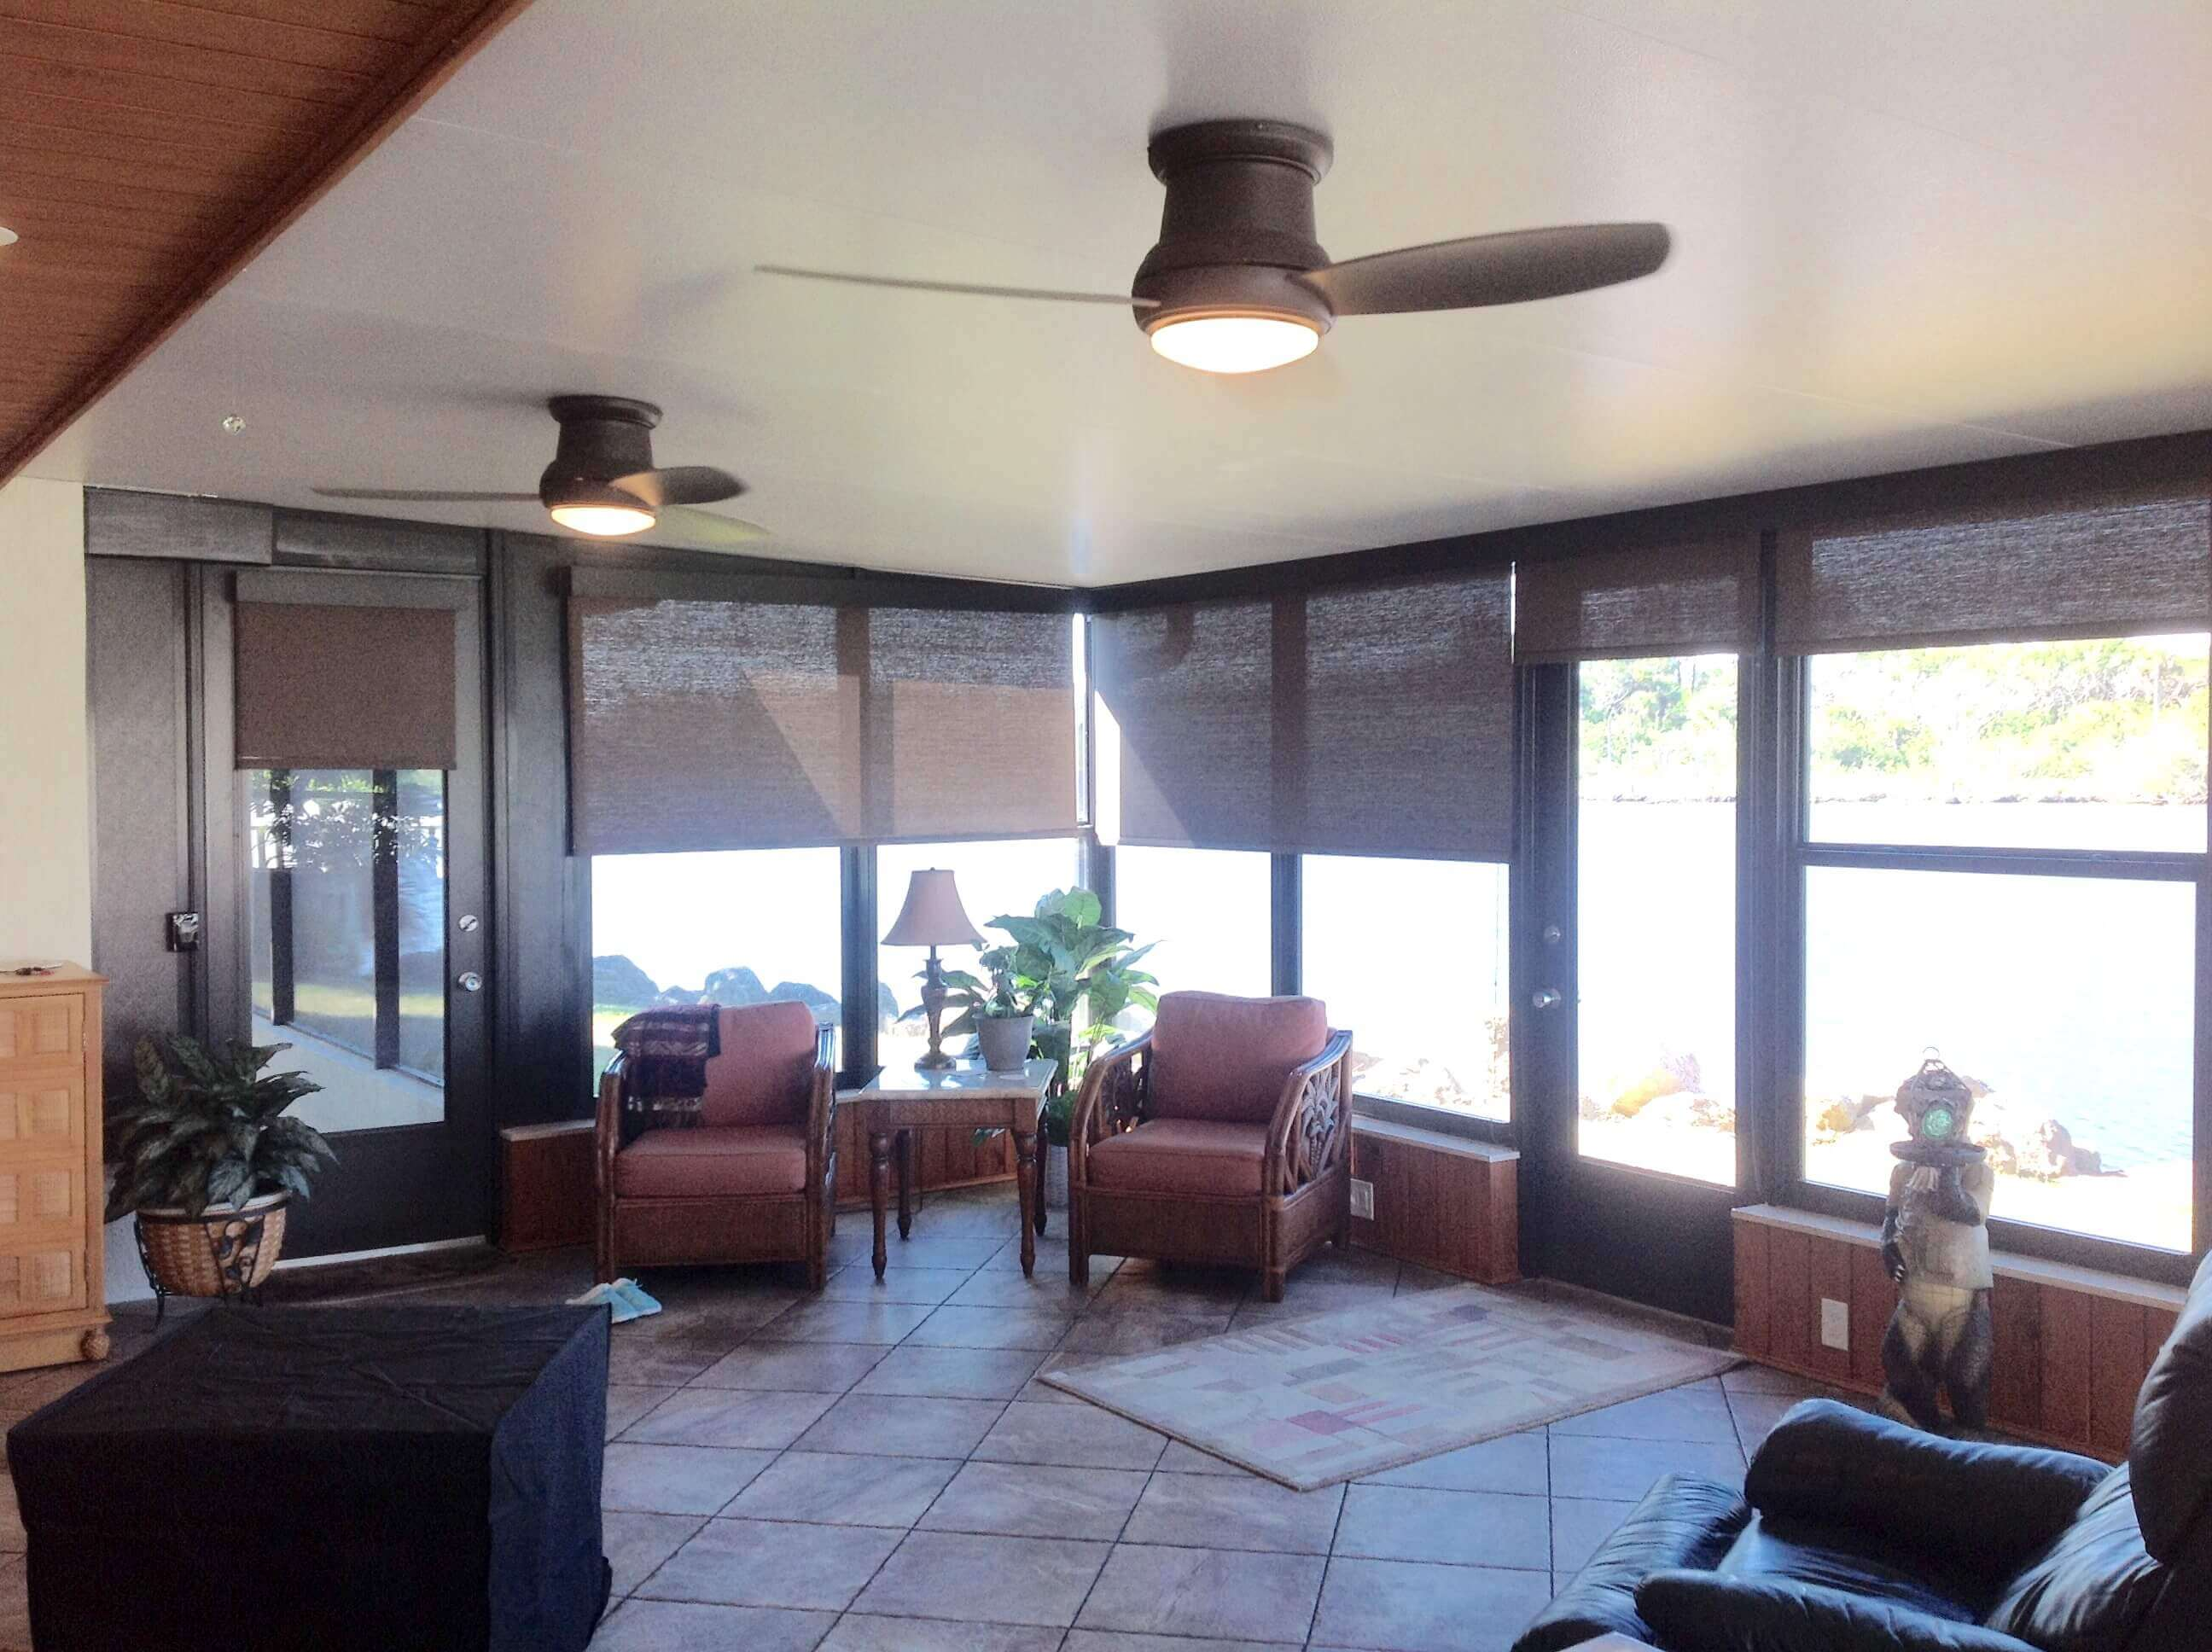 Things to Consider When Building or Adding a Sunroom